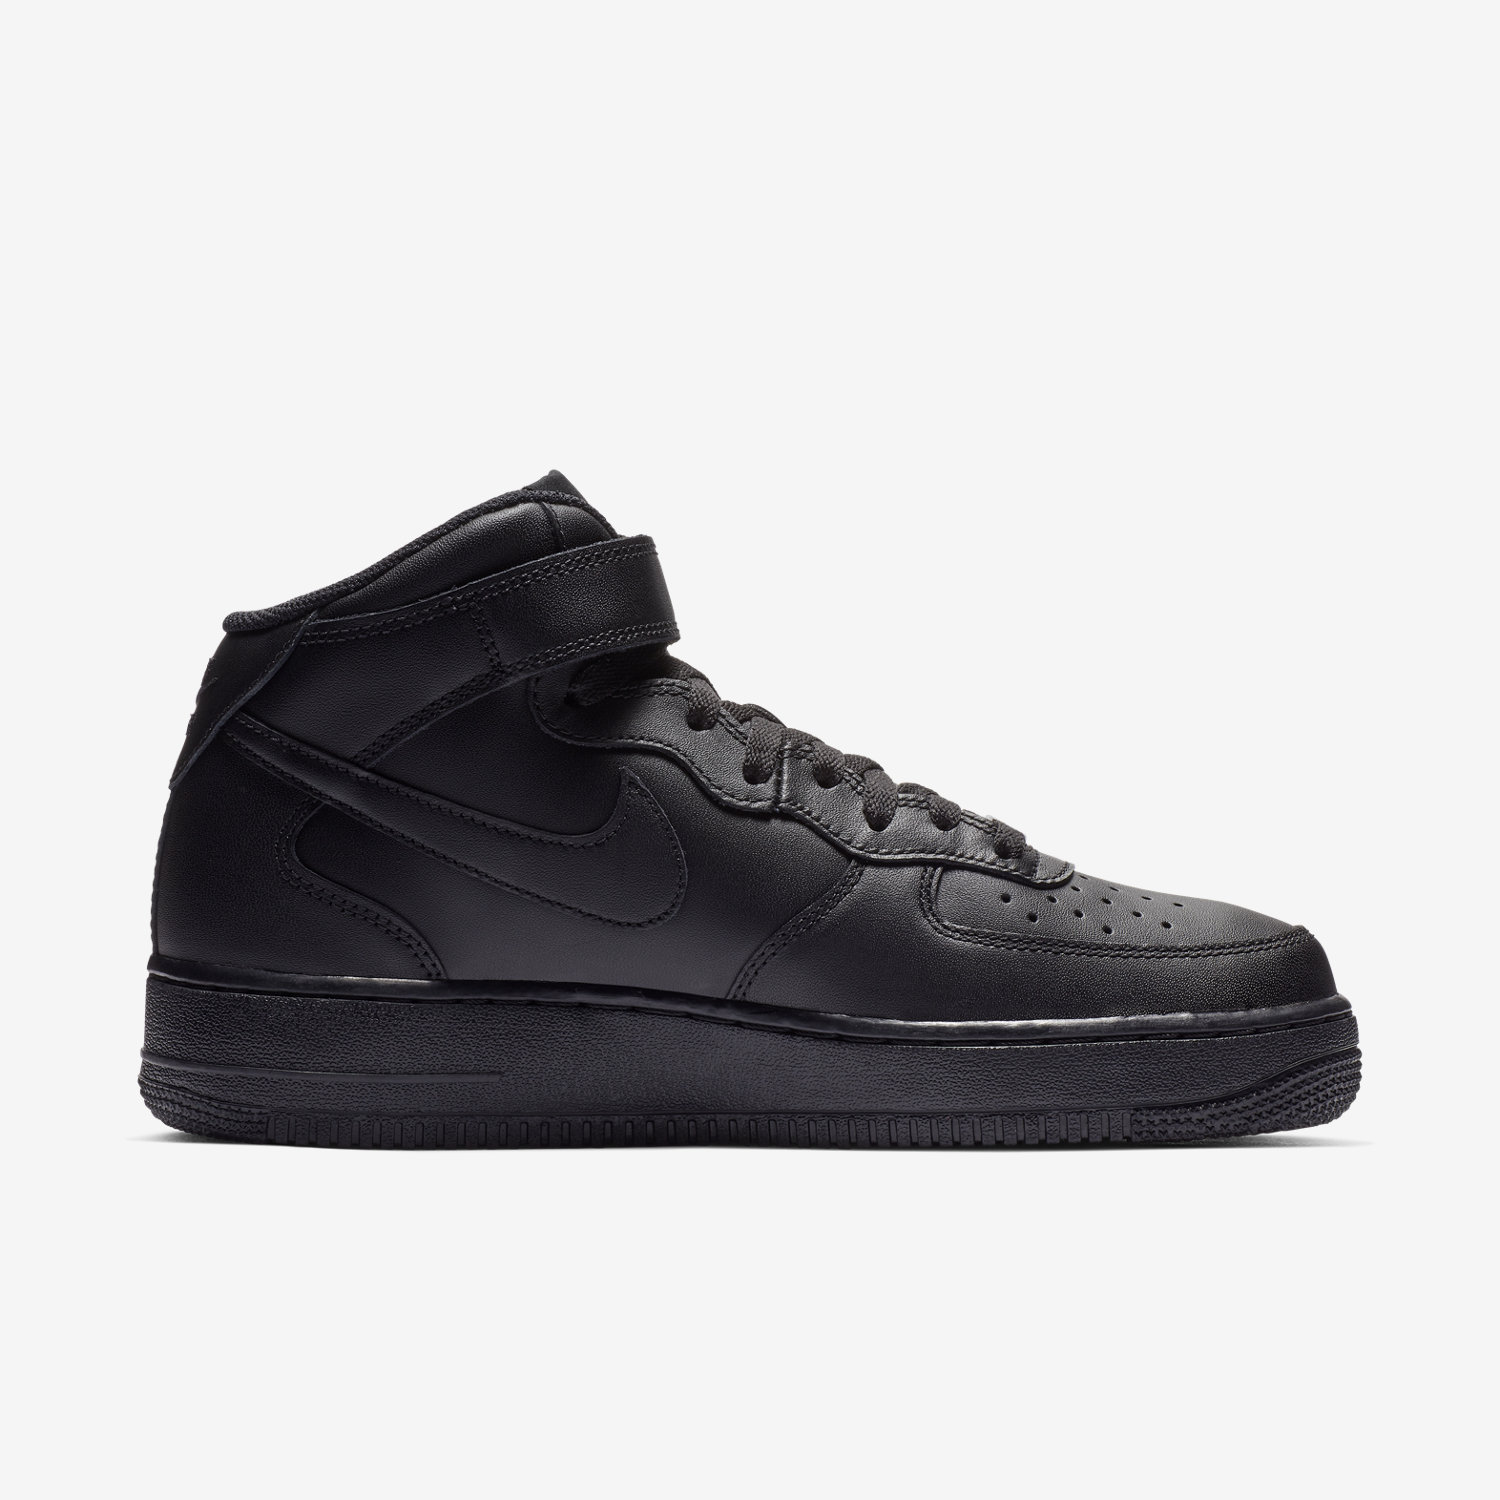 nike air force 1 mid hombre 2015